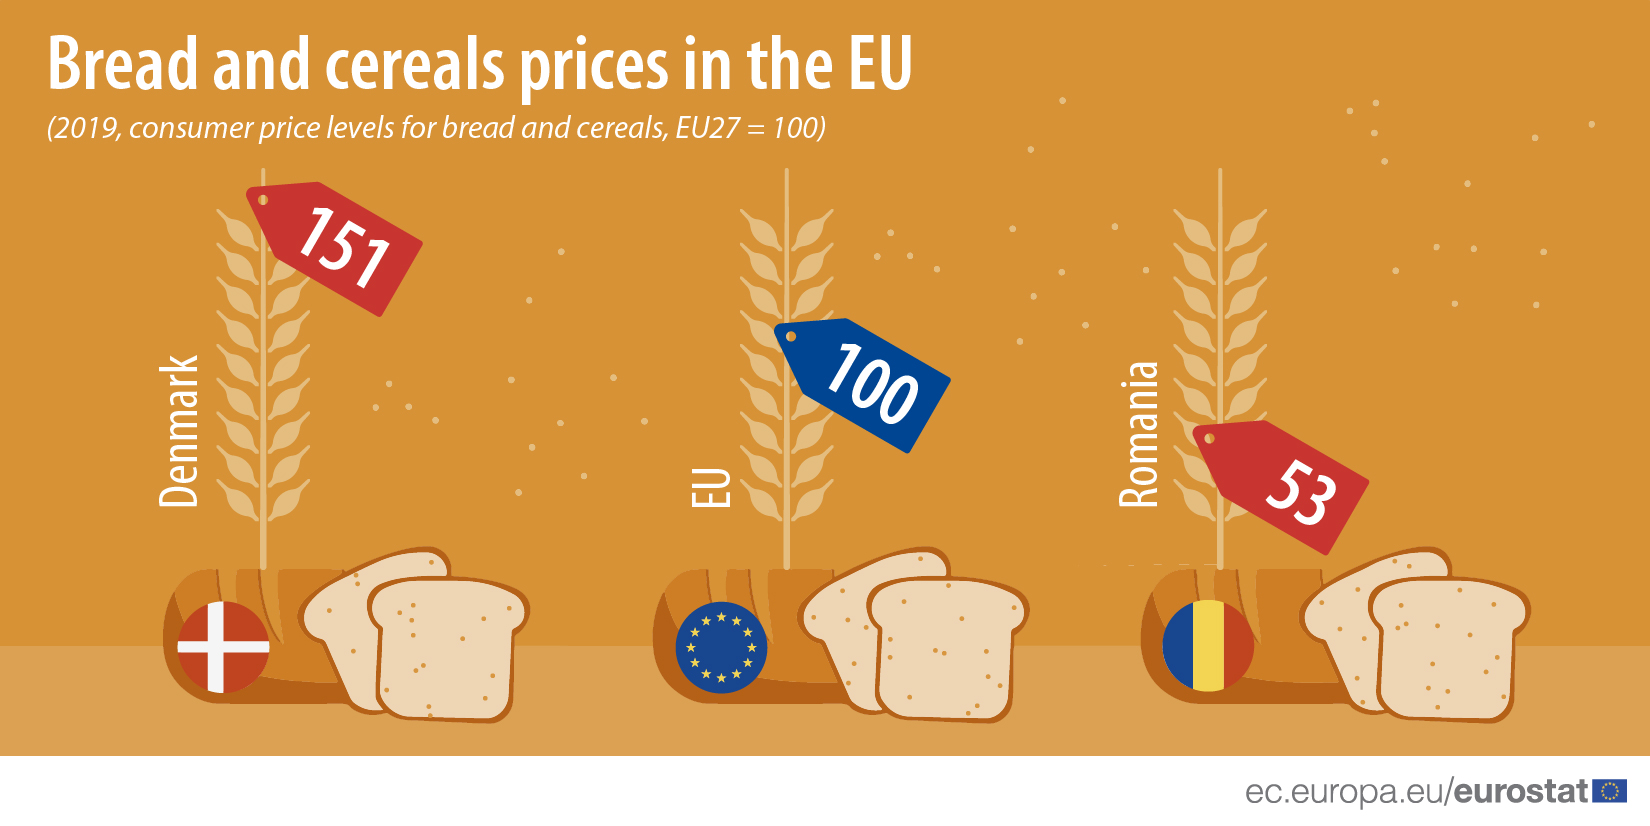 Bread and cereals prices in the EU, 2019